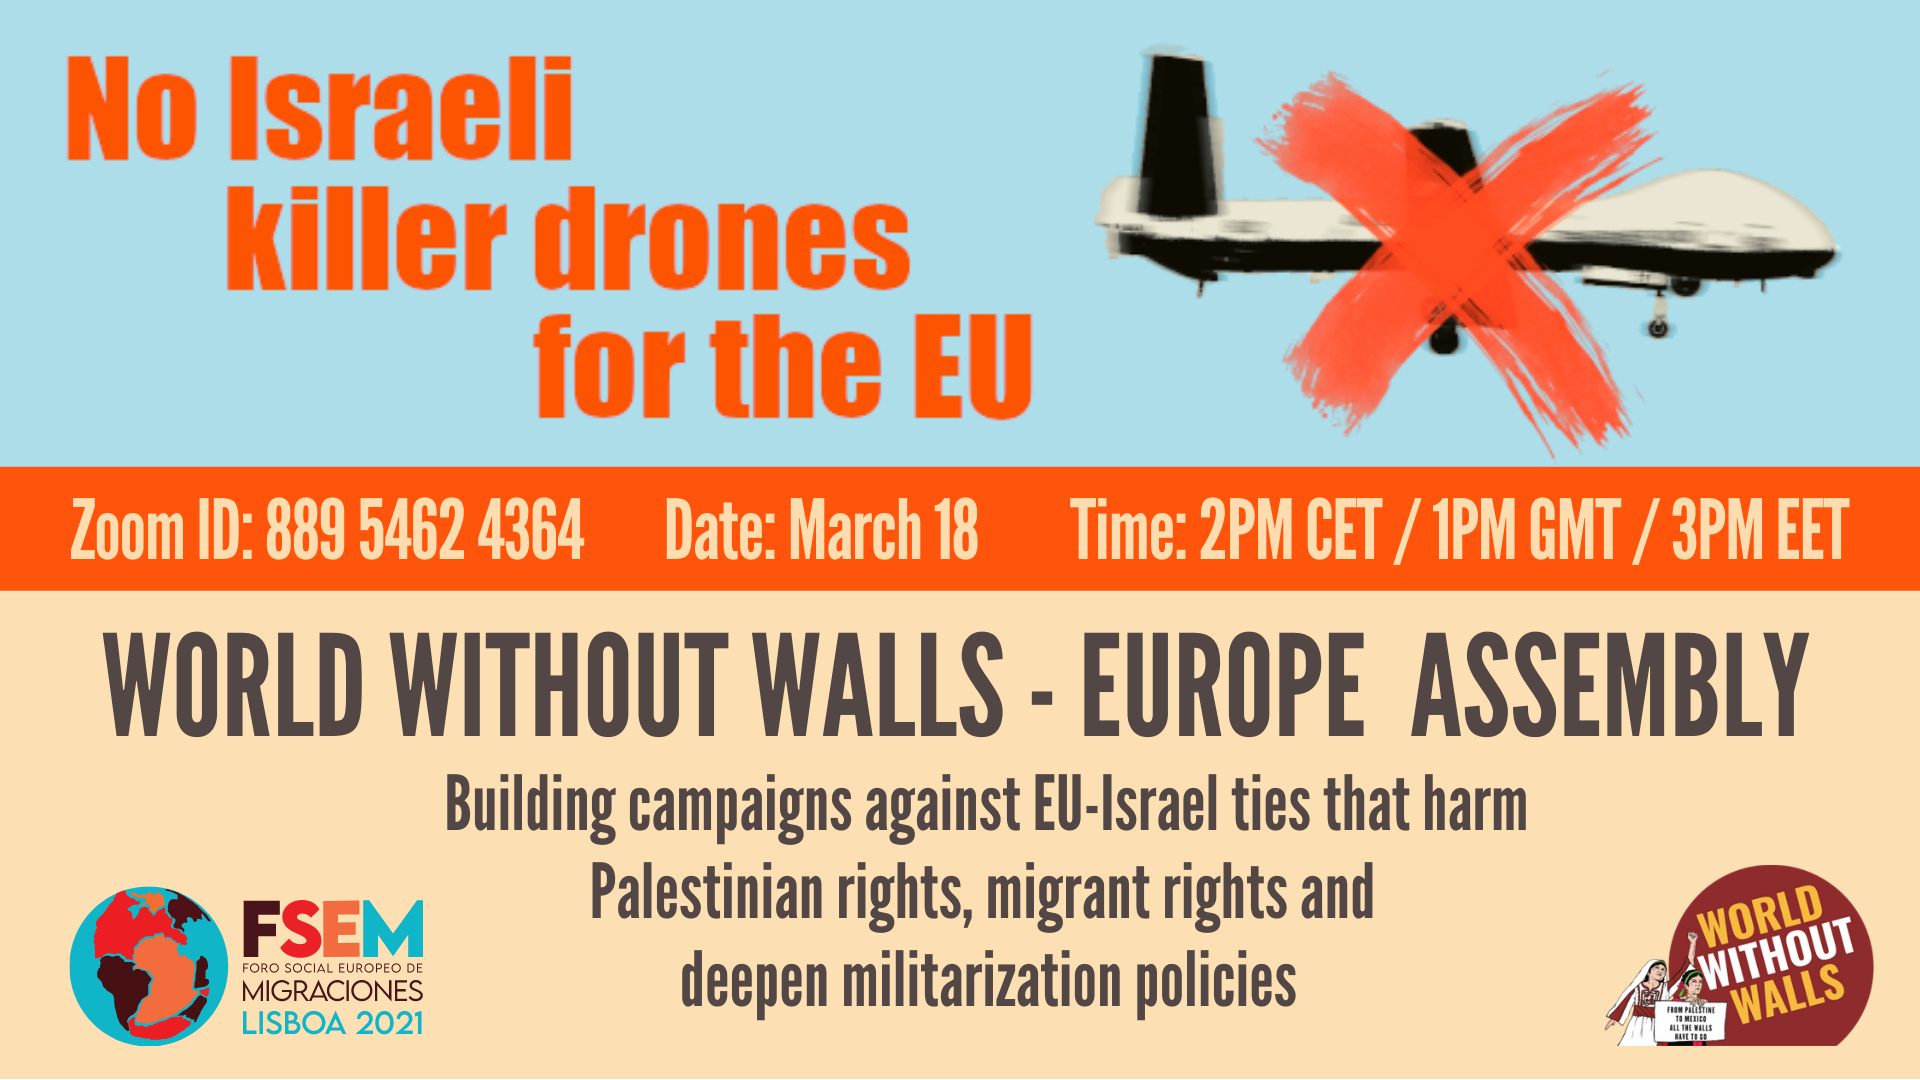 JOIN US AT THE WORLD WITHOUT WALLS – EUROPE ASSEMBLY